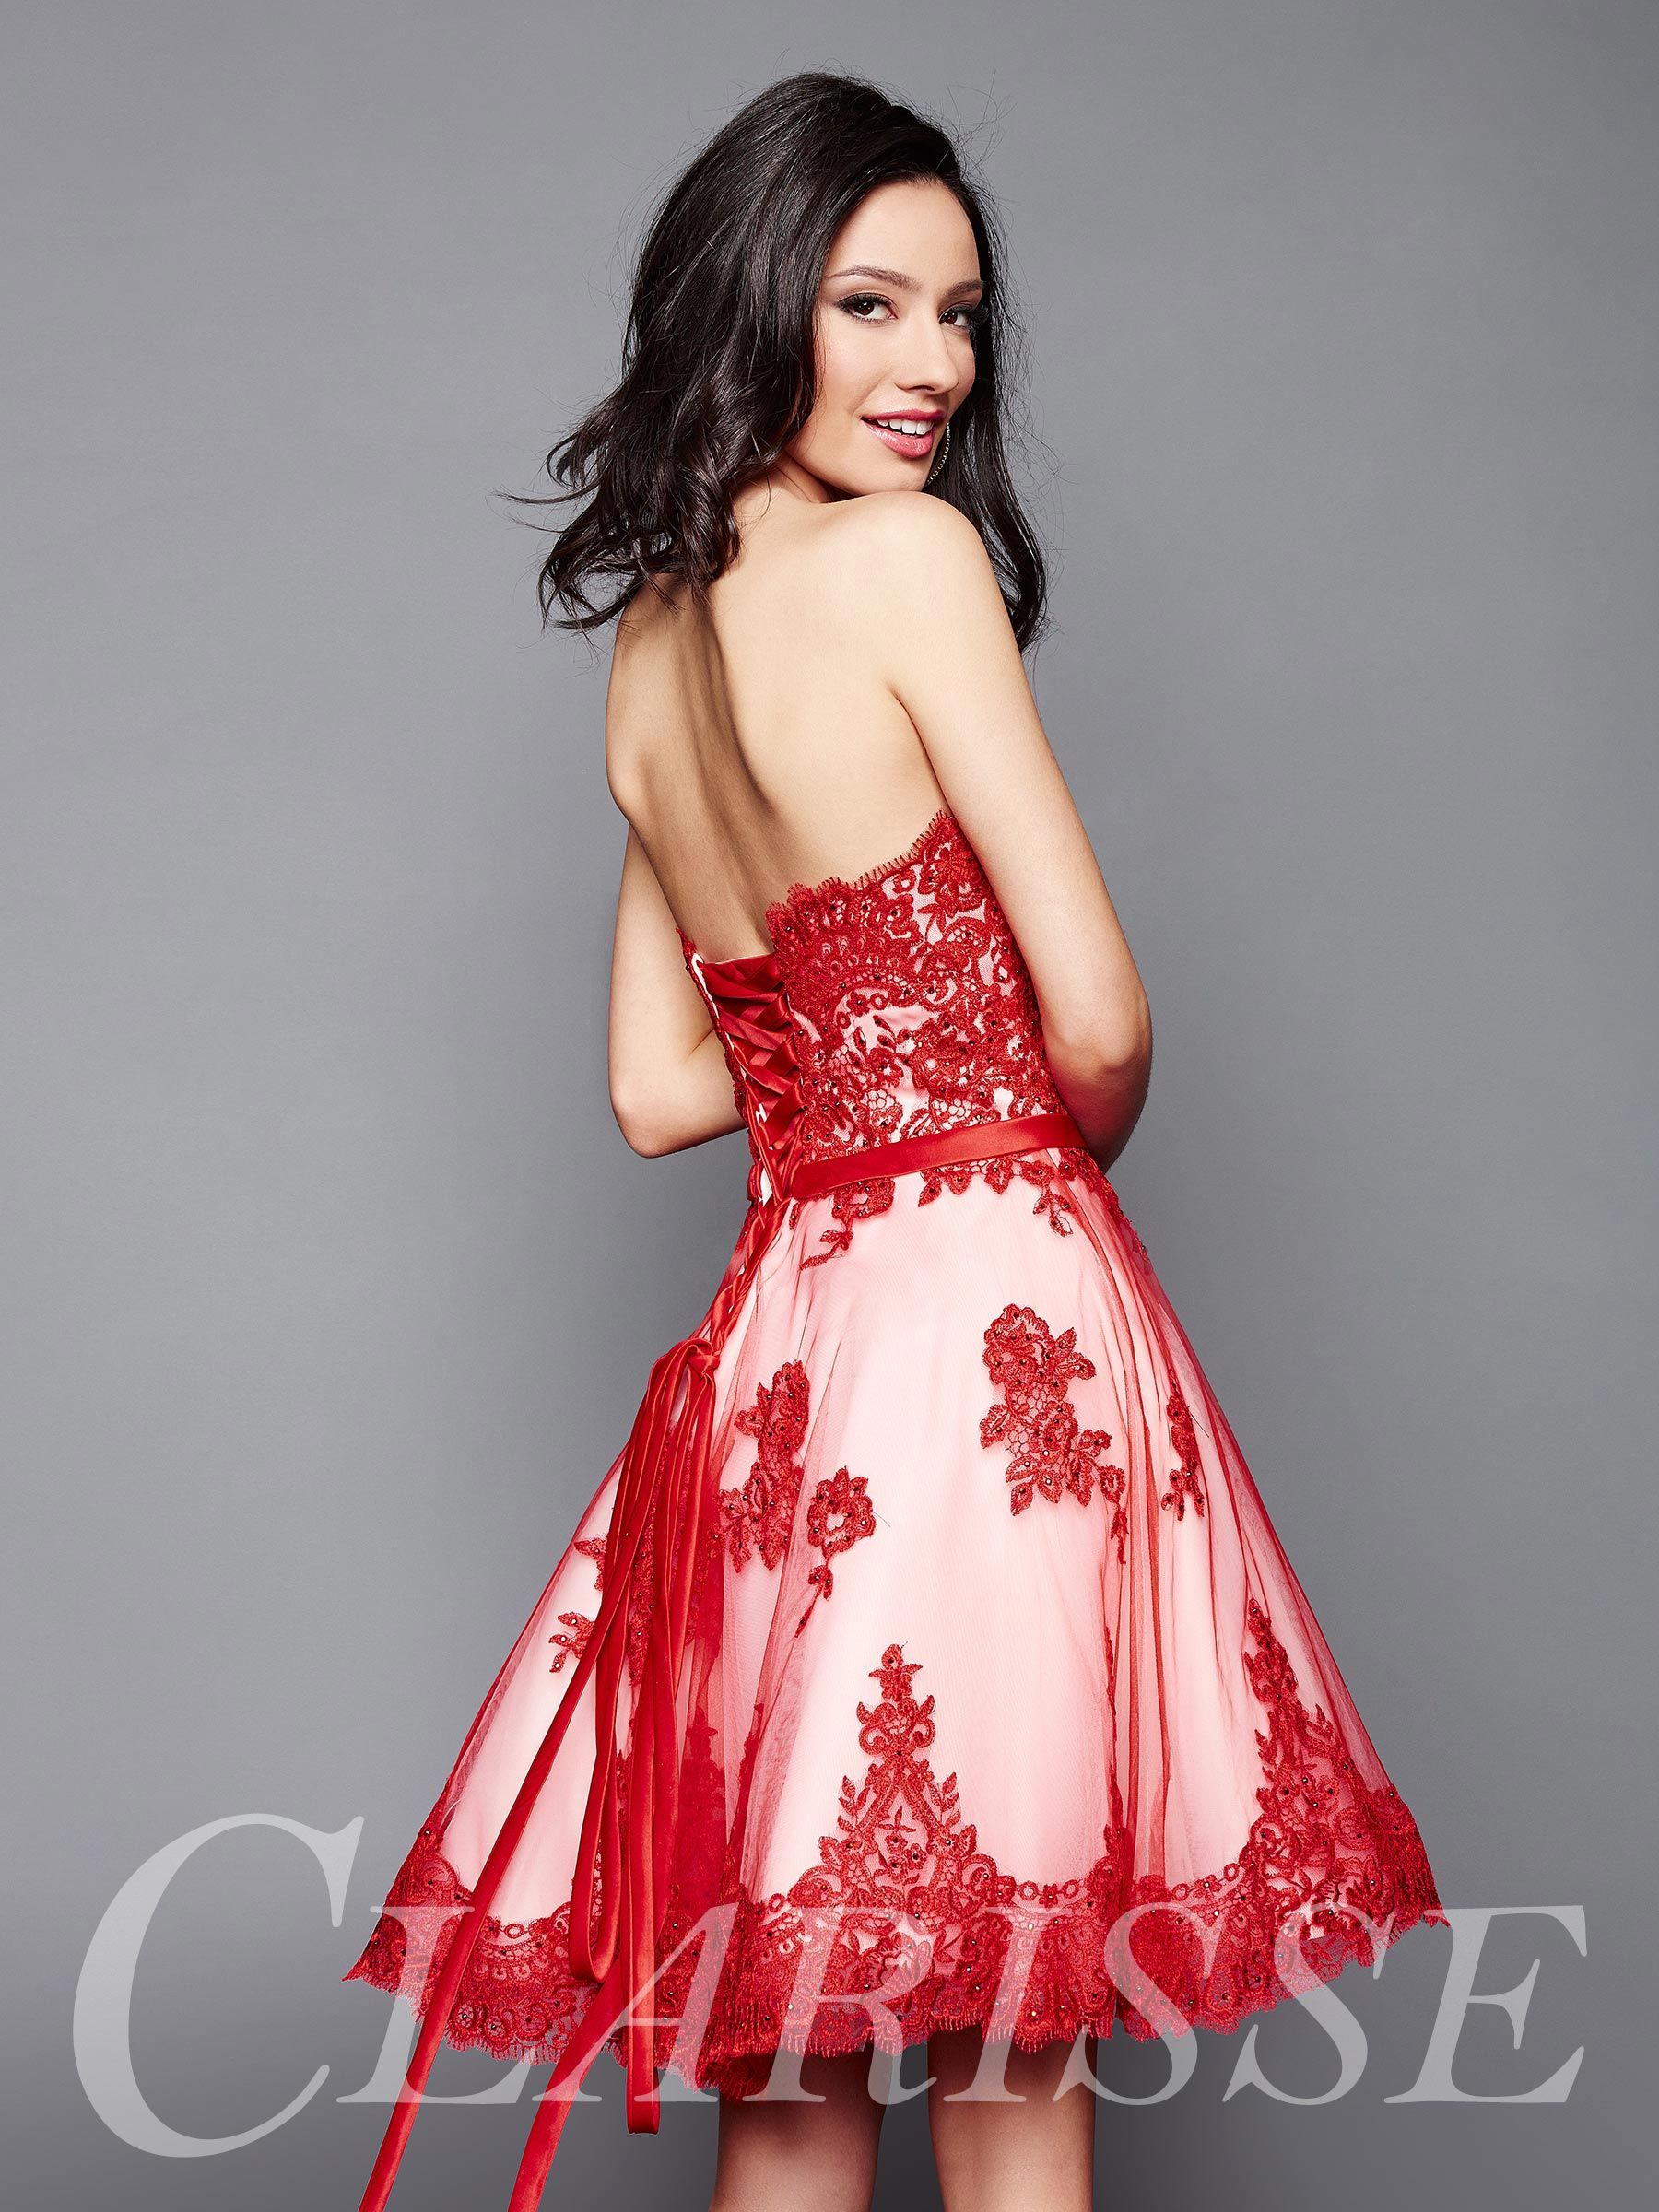 Red dress size 0 and 00